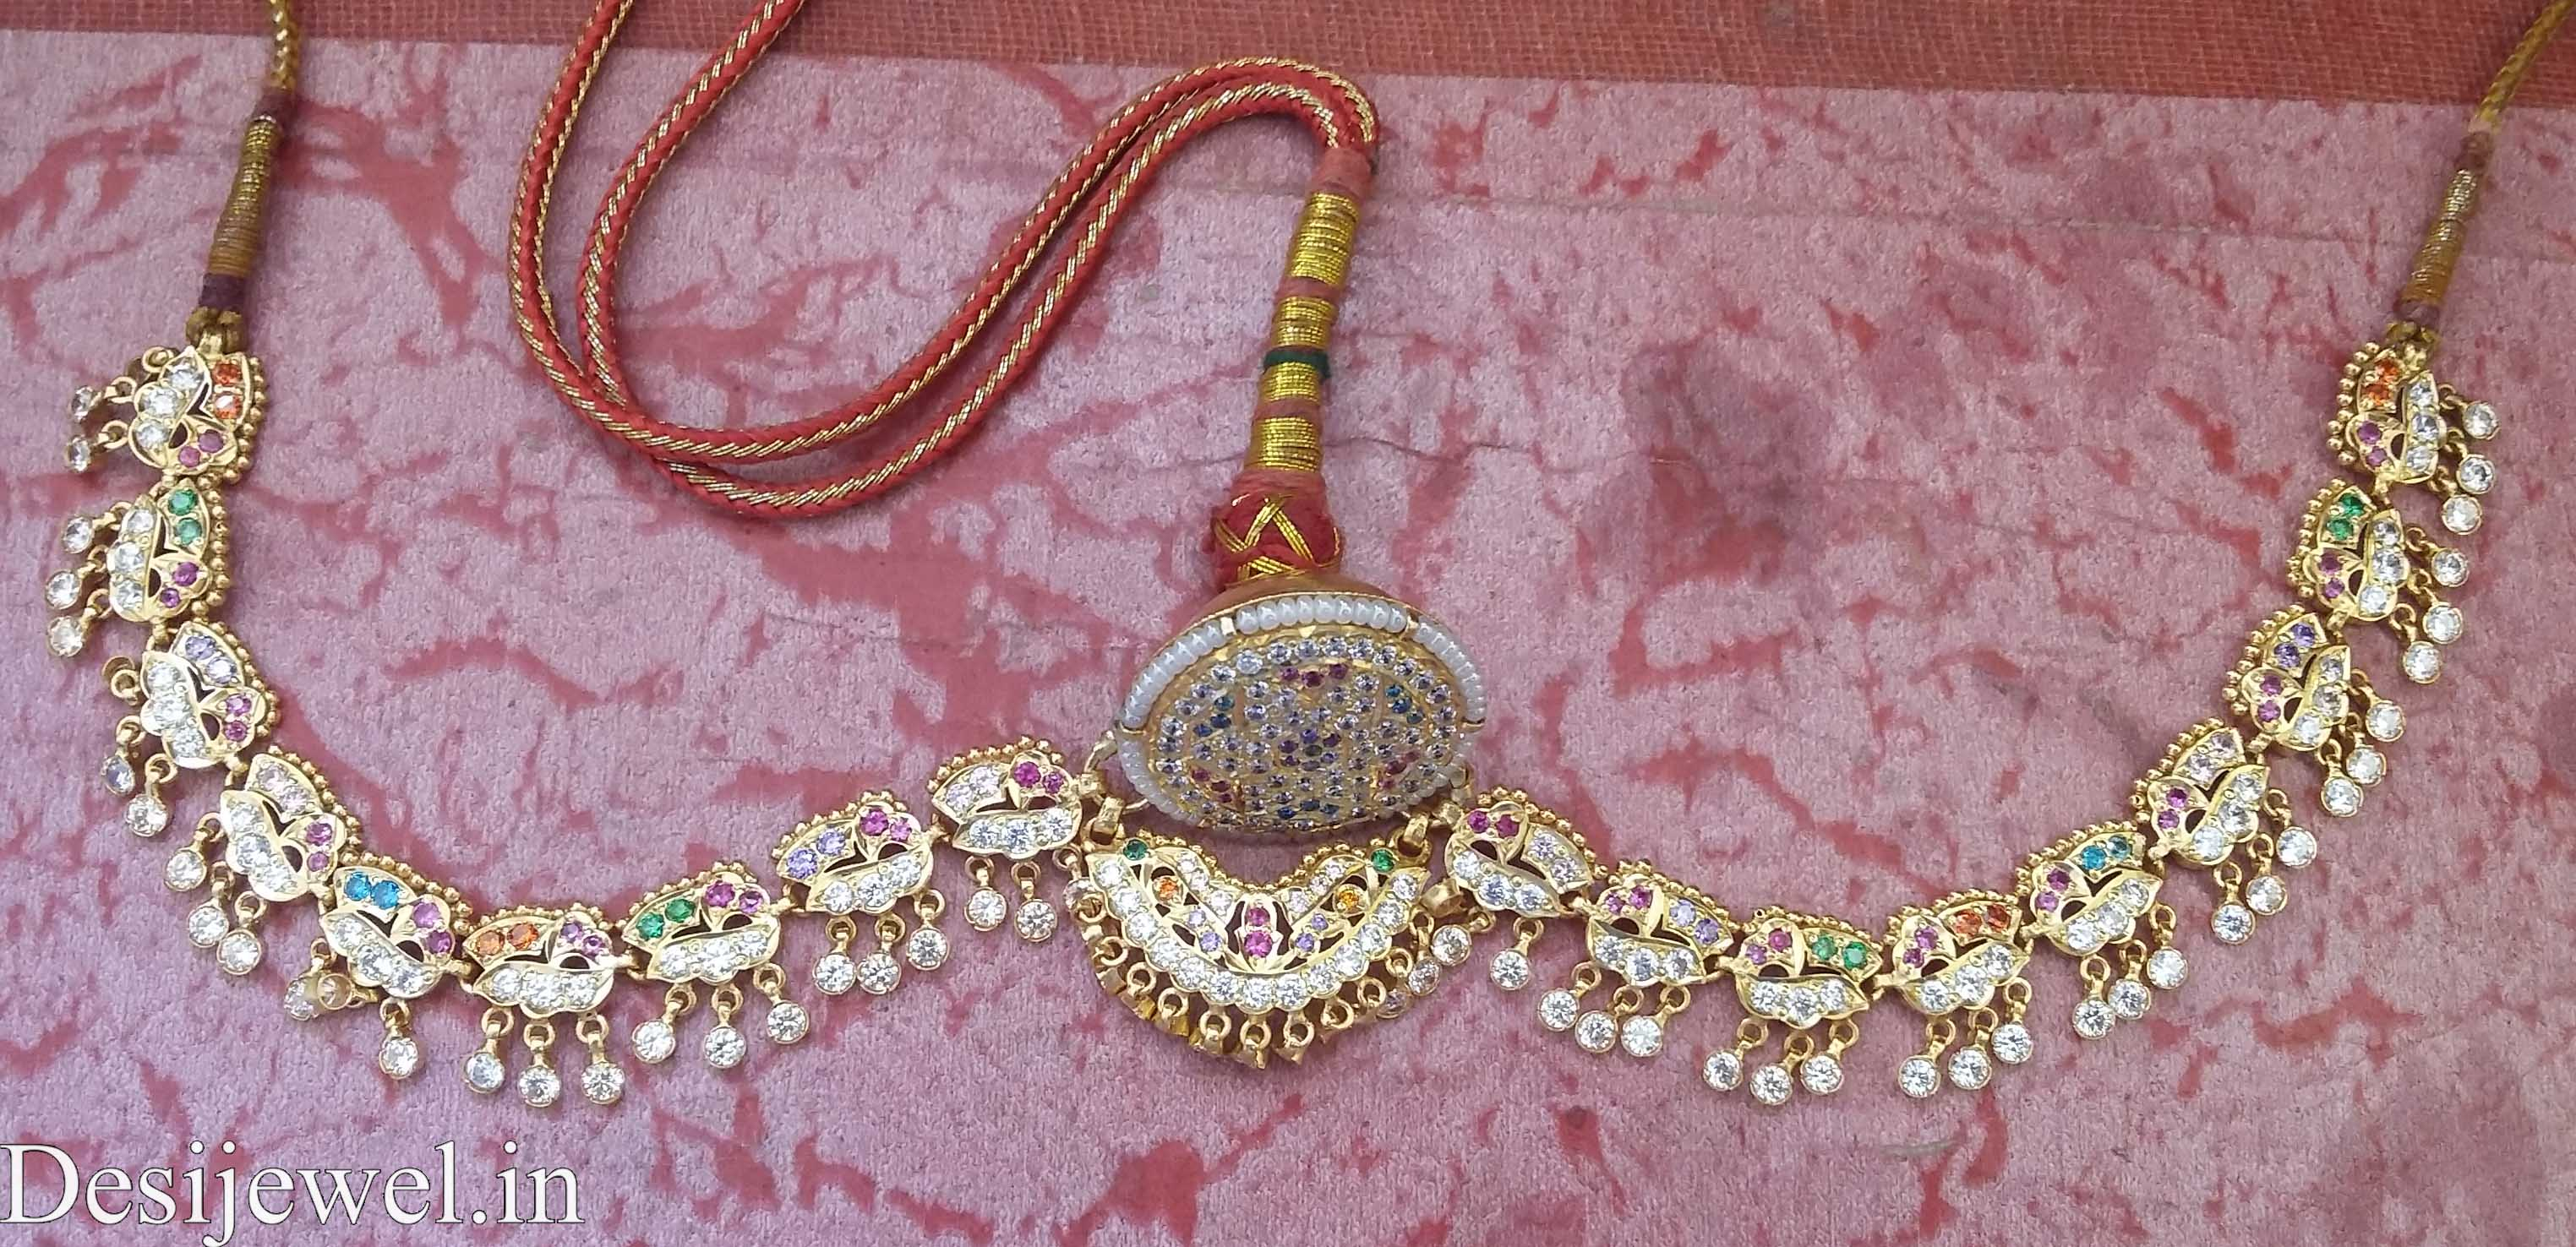 Marwadi Rajasthani Desi gold Rakhdi-Set And Weight is 18-24 gm